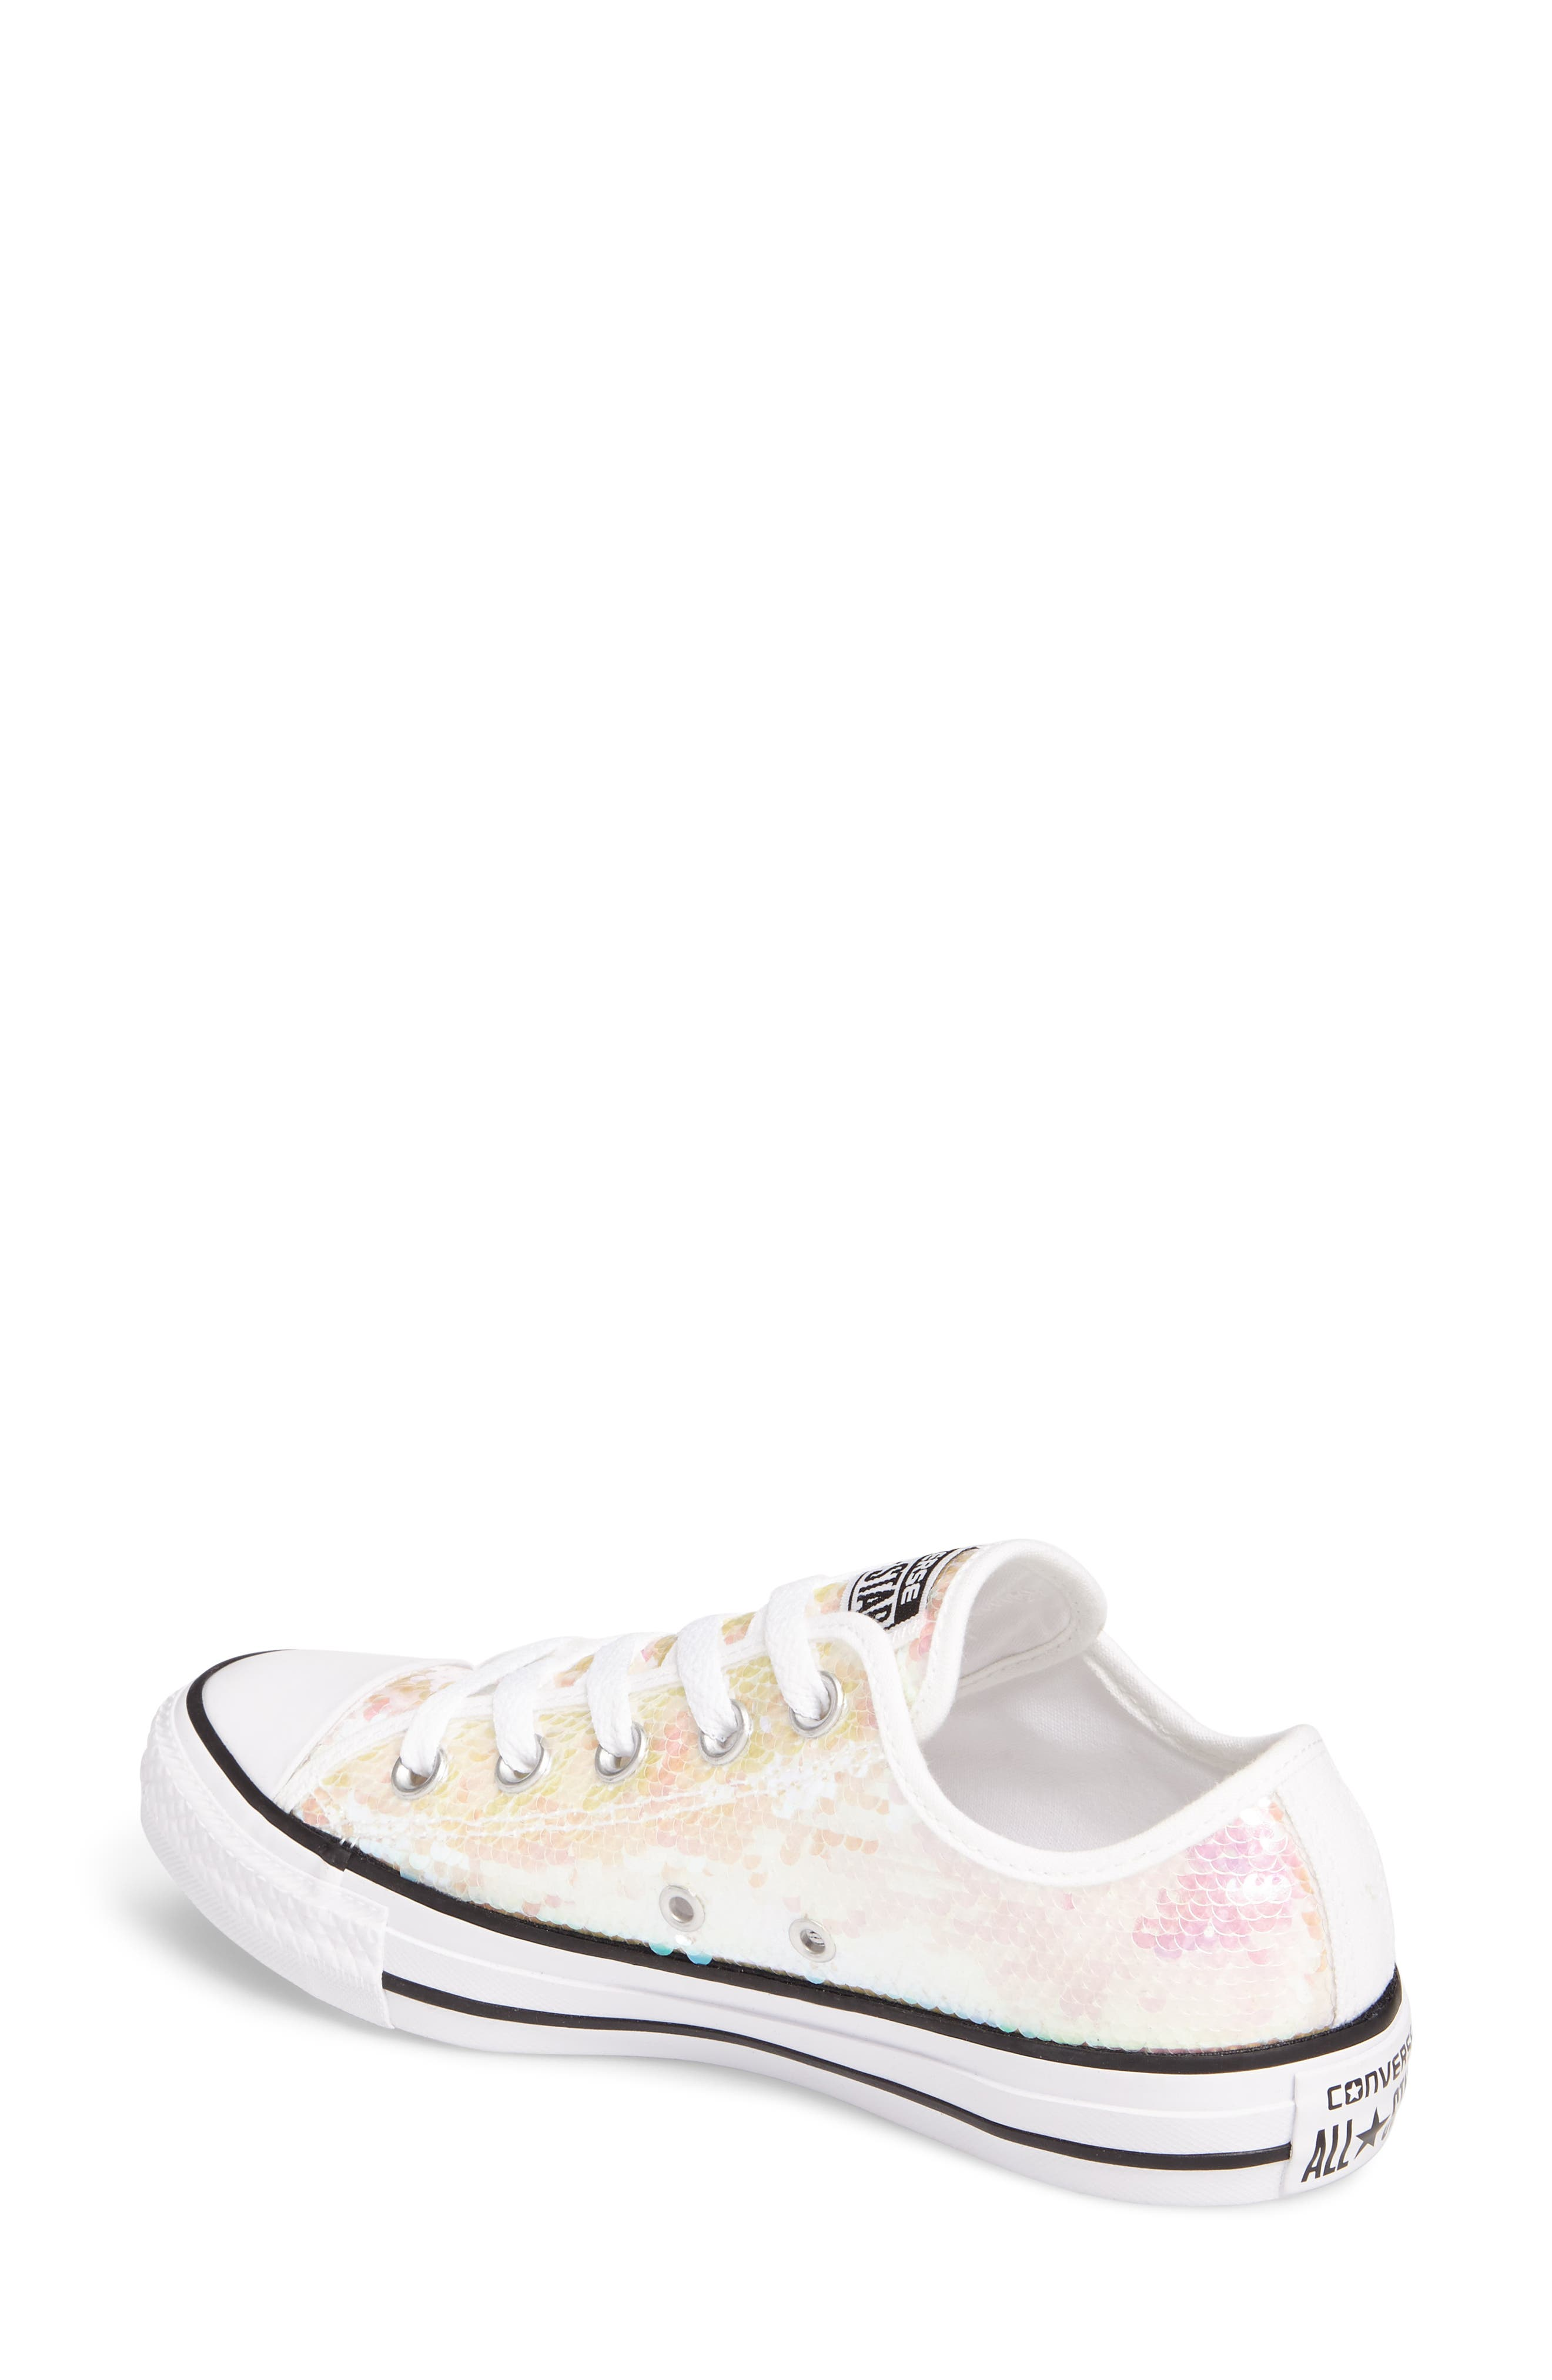 Alternate Image 2  - Converse Chuck Taylor® All Star® Sequin Low Top Sneaker (Women)